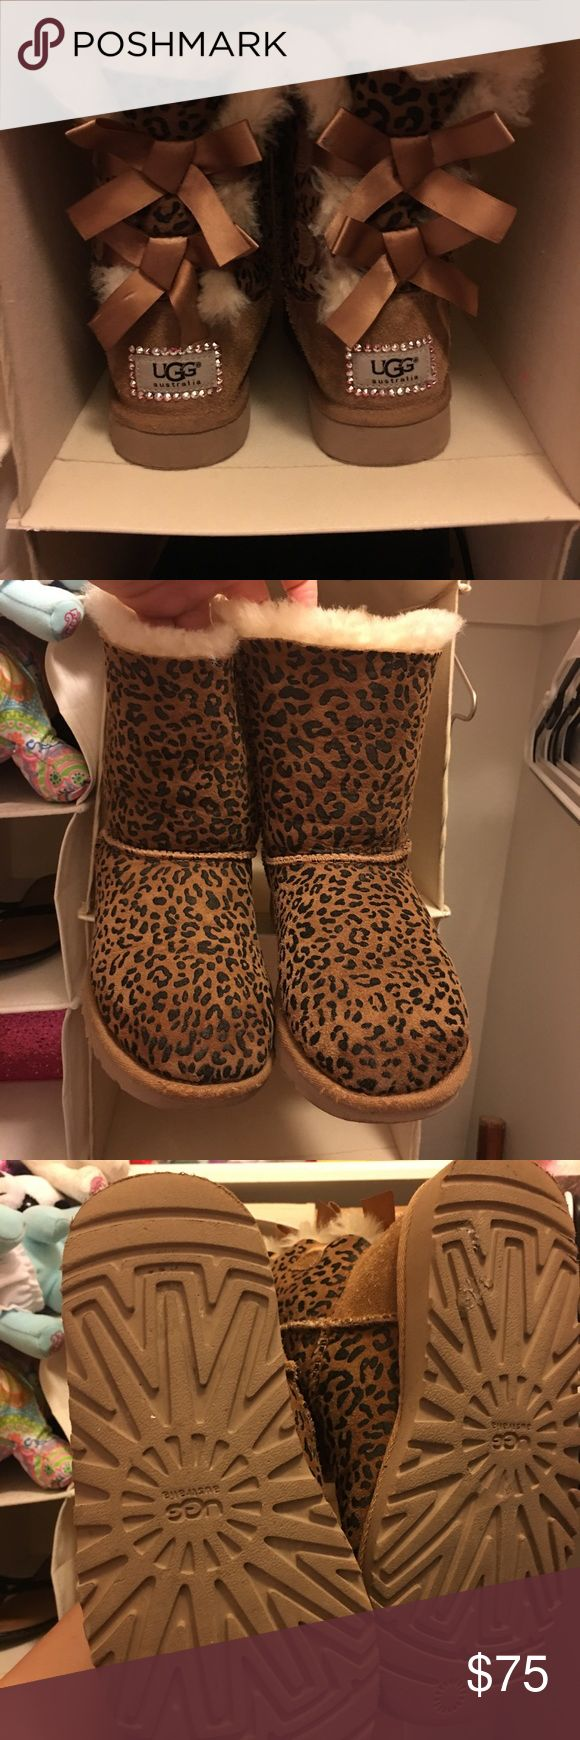 Girls ugg boots cheetah print Girls sz 2 ugg cheetah print Bailey boots w/bows has genuine Swarovski crystals embellishments on the back. UGG Shoes Ankle Boots & Booties